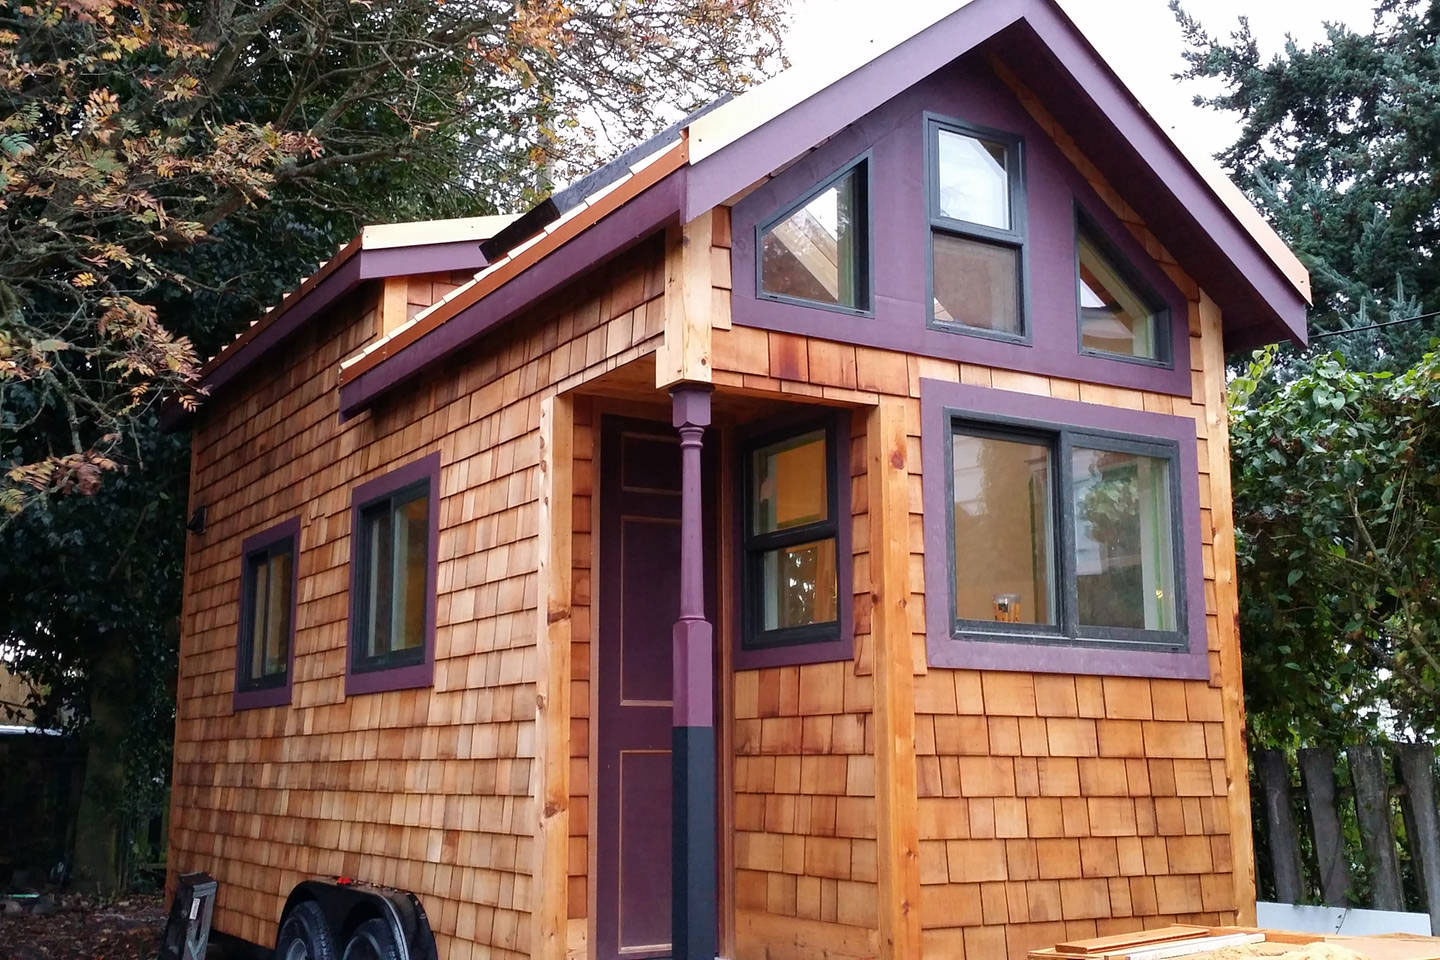 Stay in hannah 39 s tiny house in seattle small is beautiful for Beautiful small houses